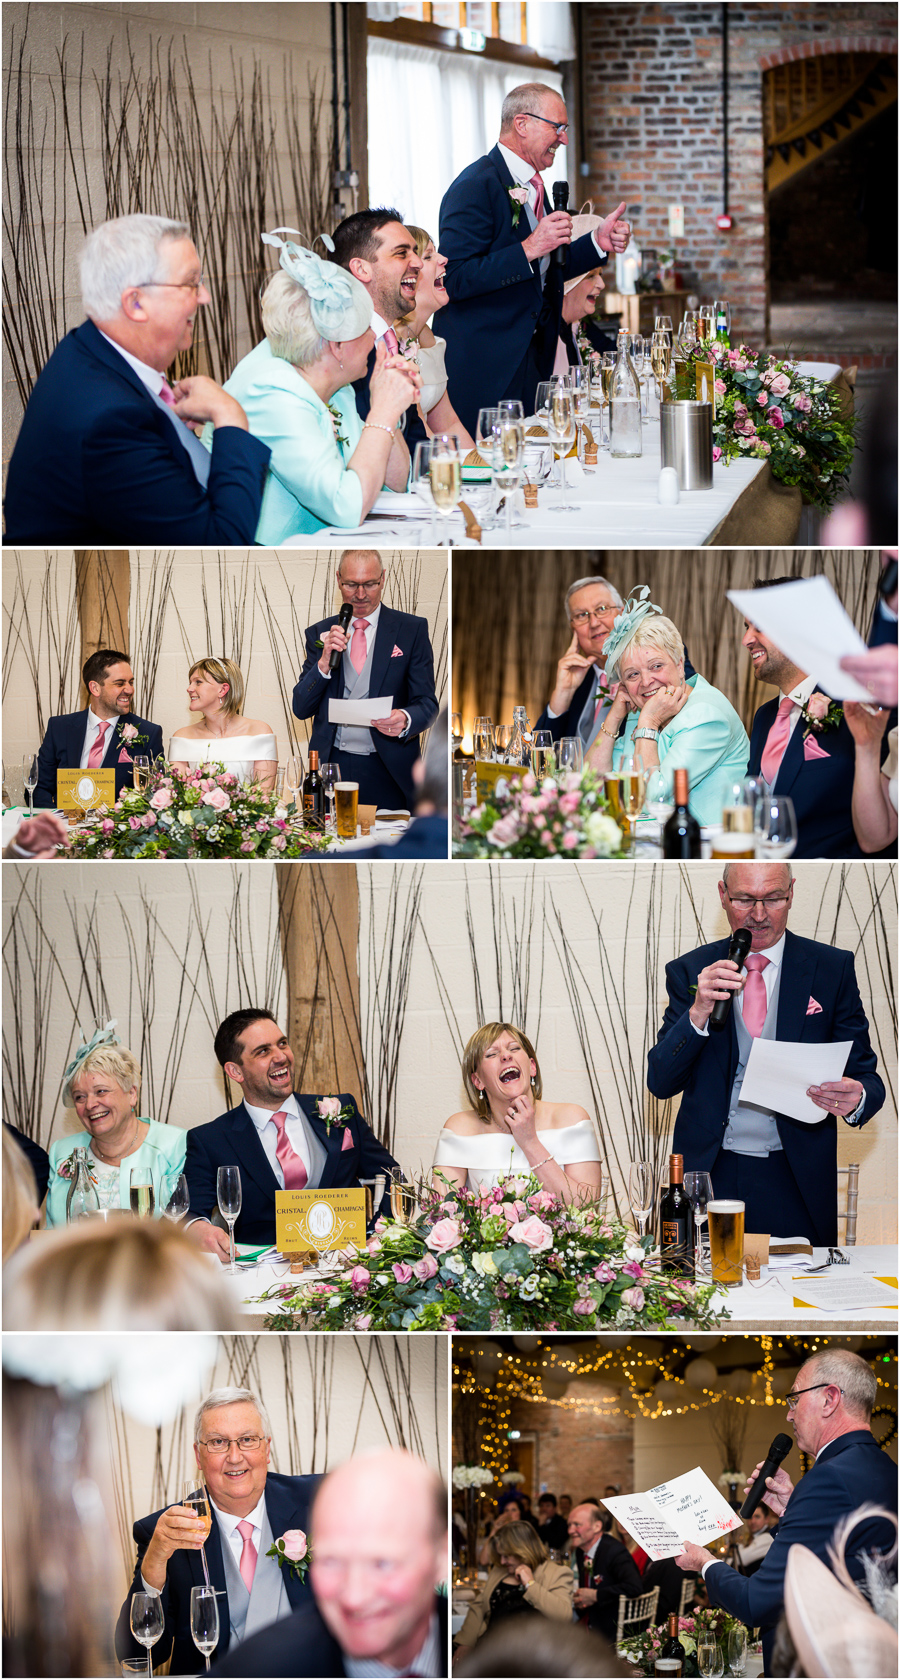 yorkshire wedding photographer - Wedding at Barnbyfields Barns in York